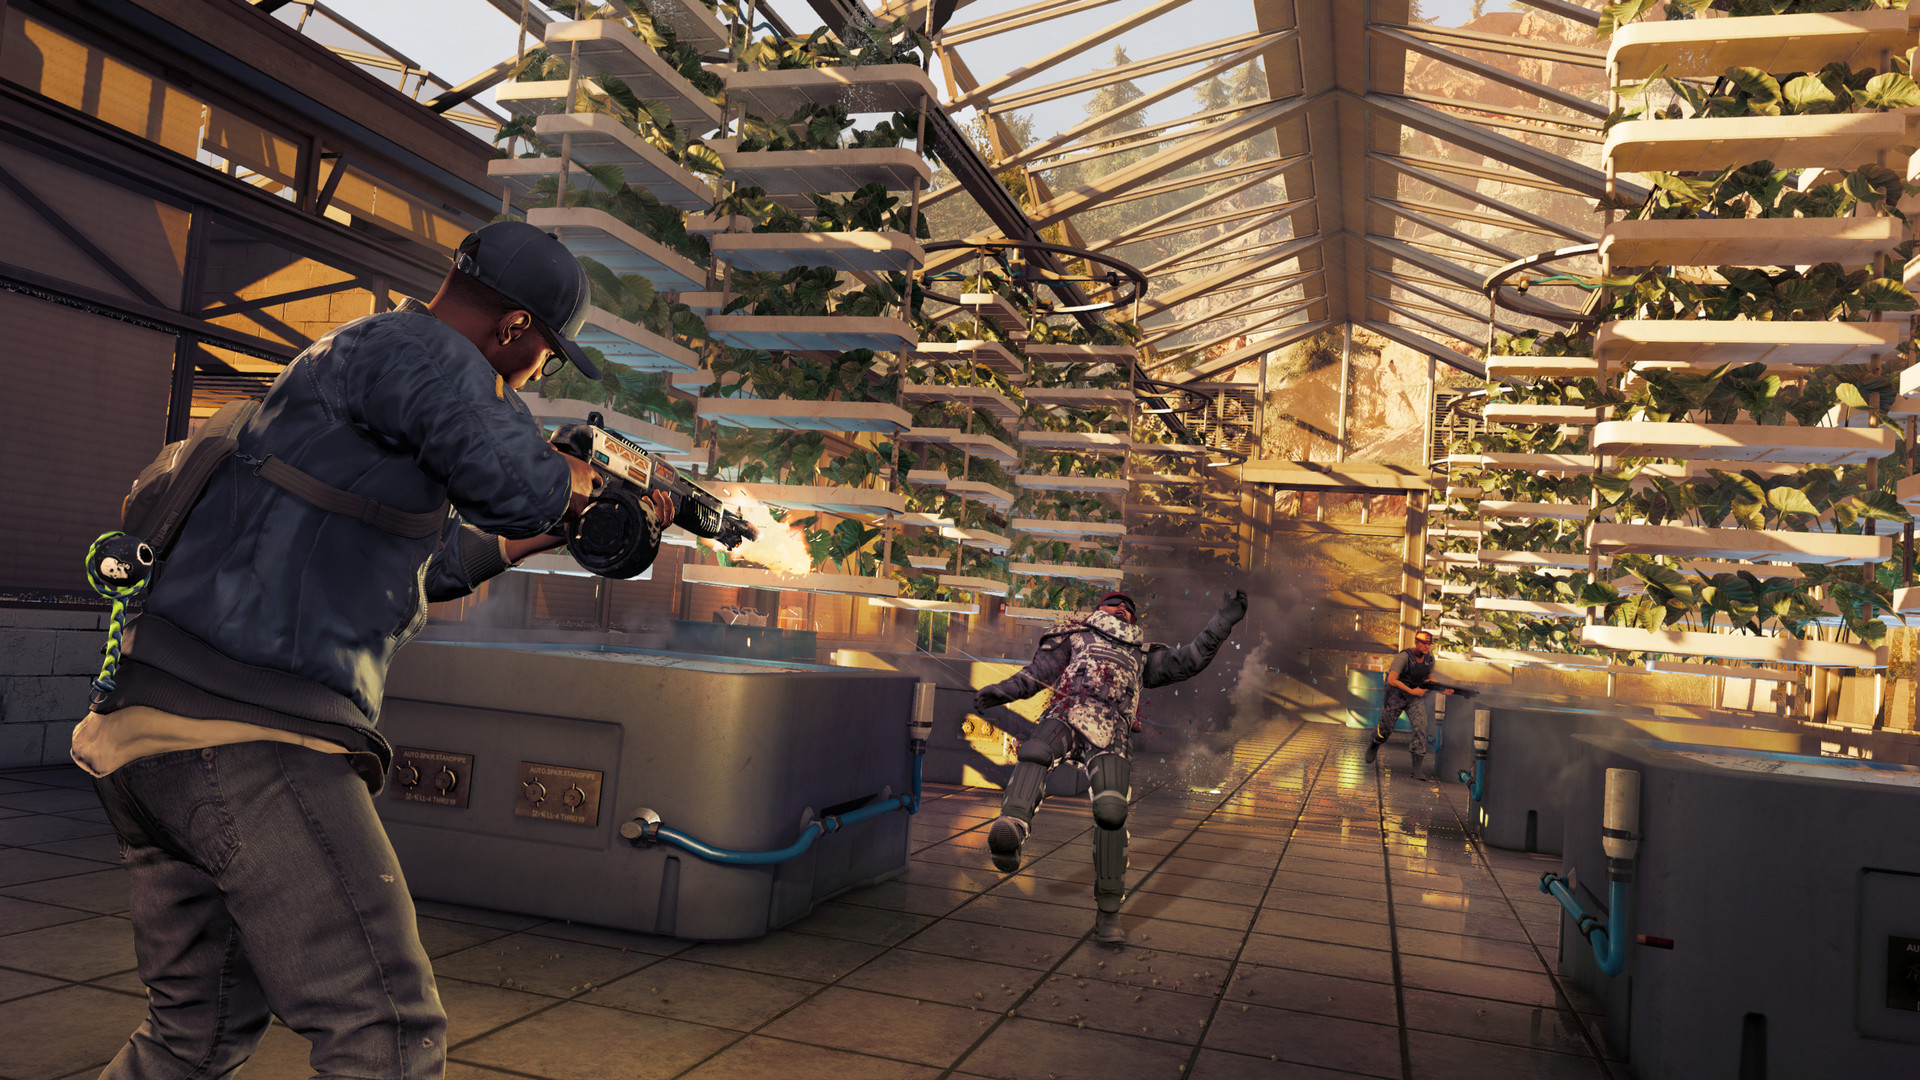 watch dogs 2 free download - crohasit - download pc games for free